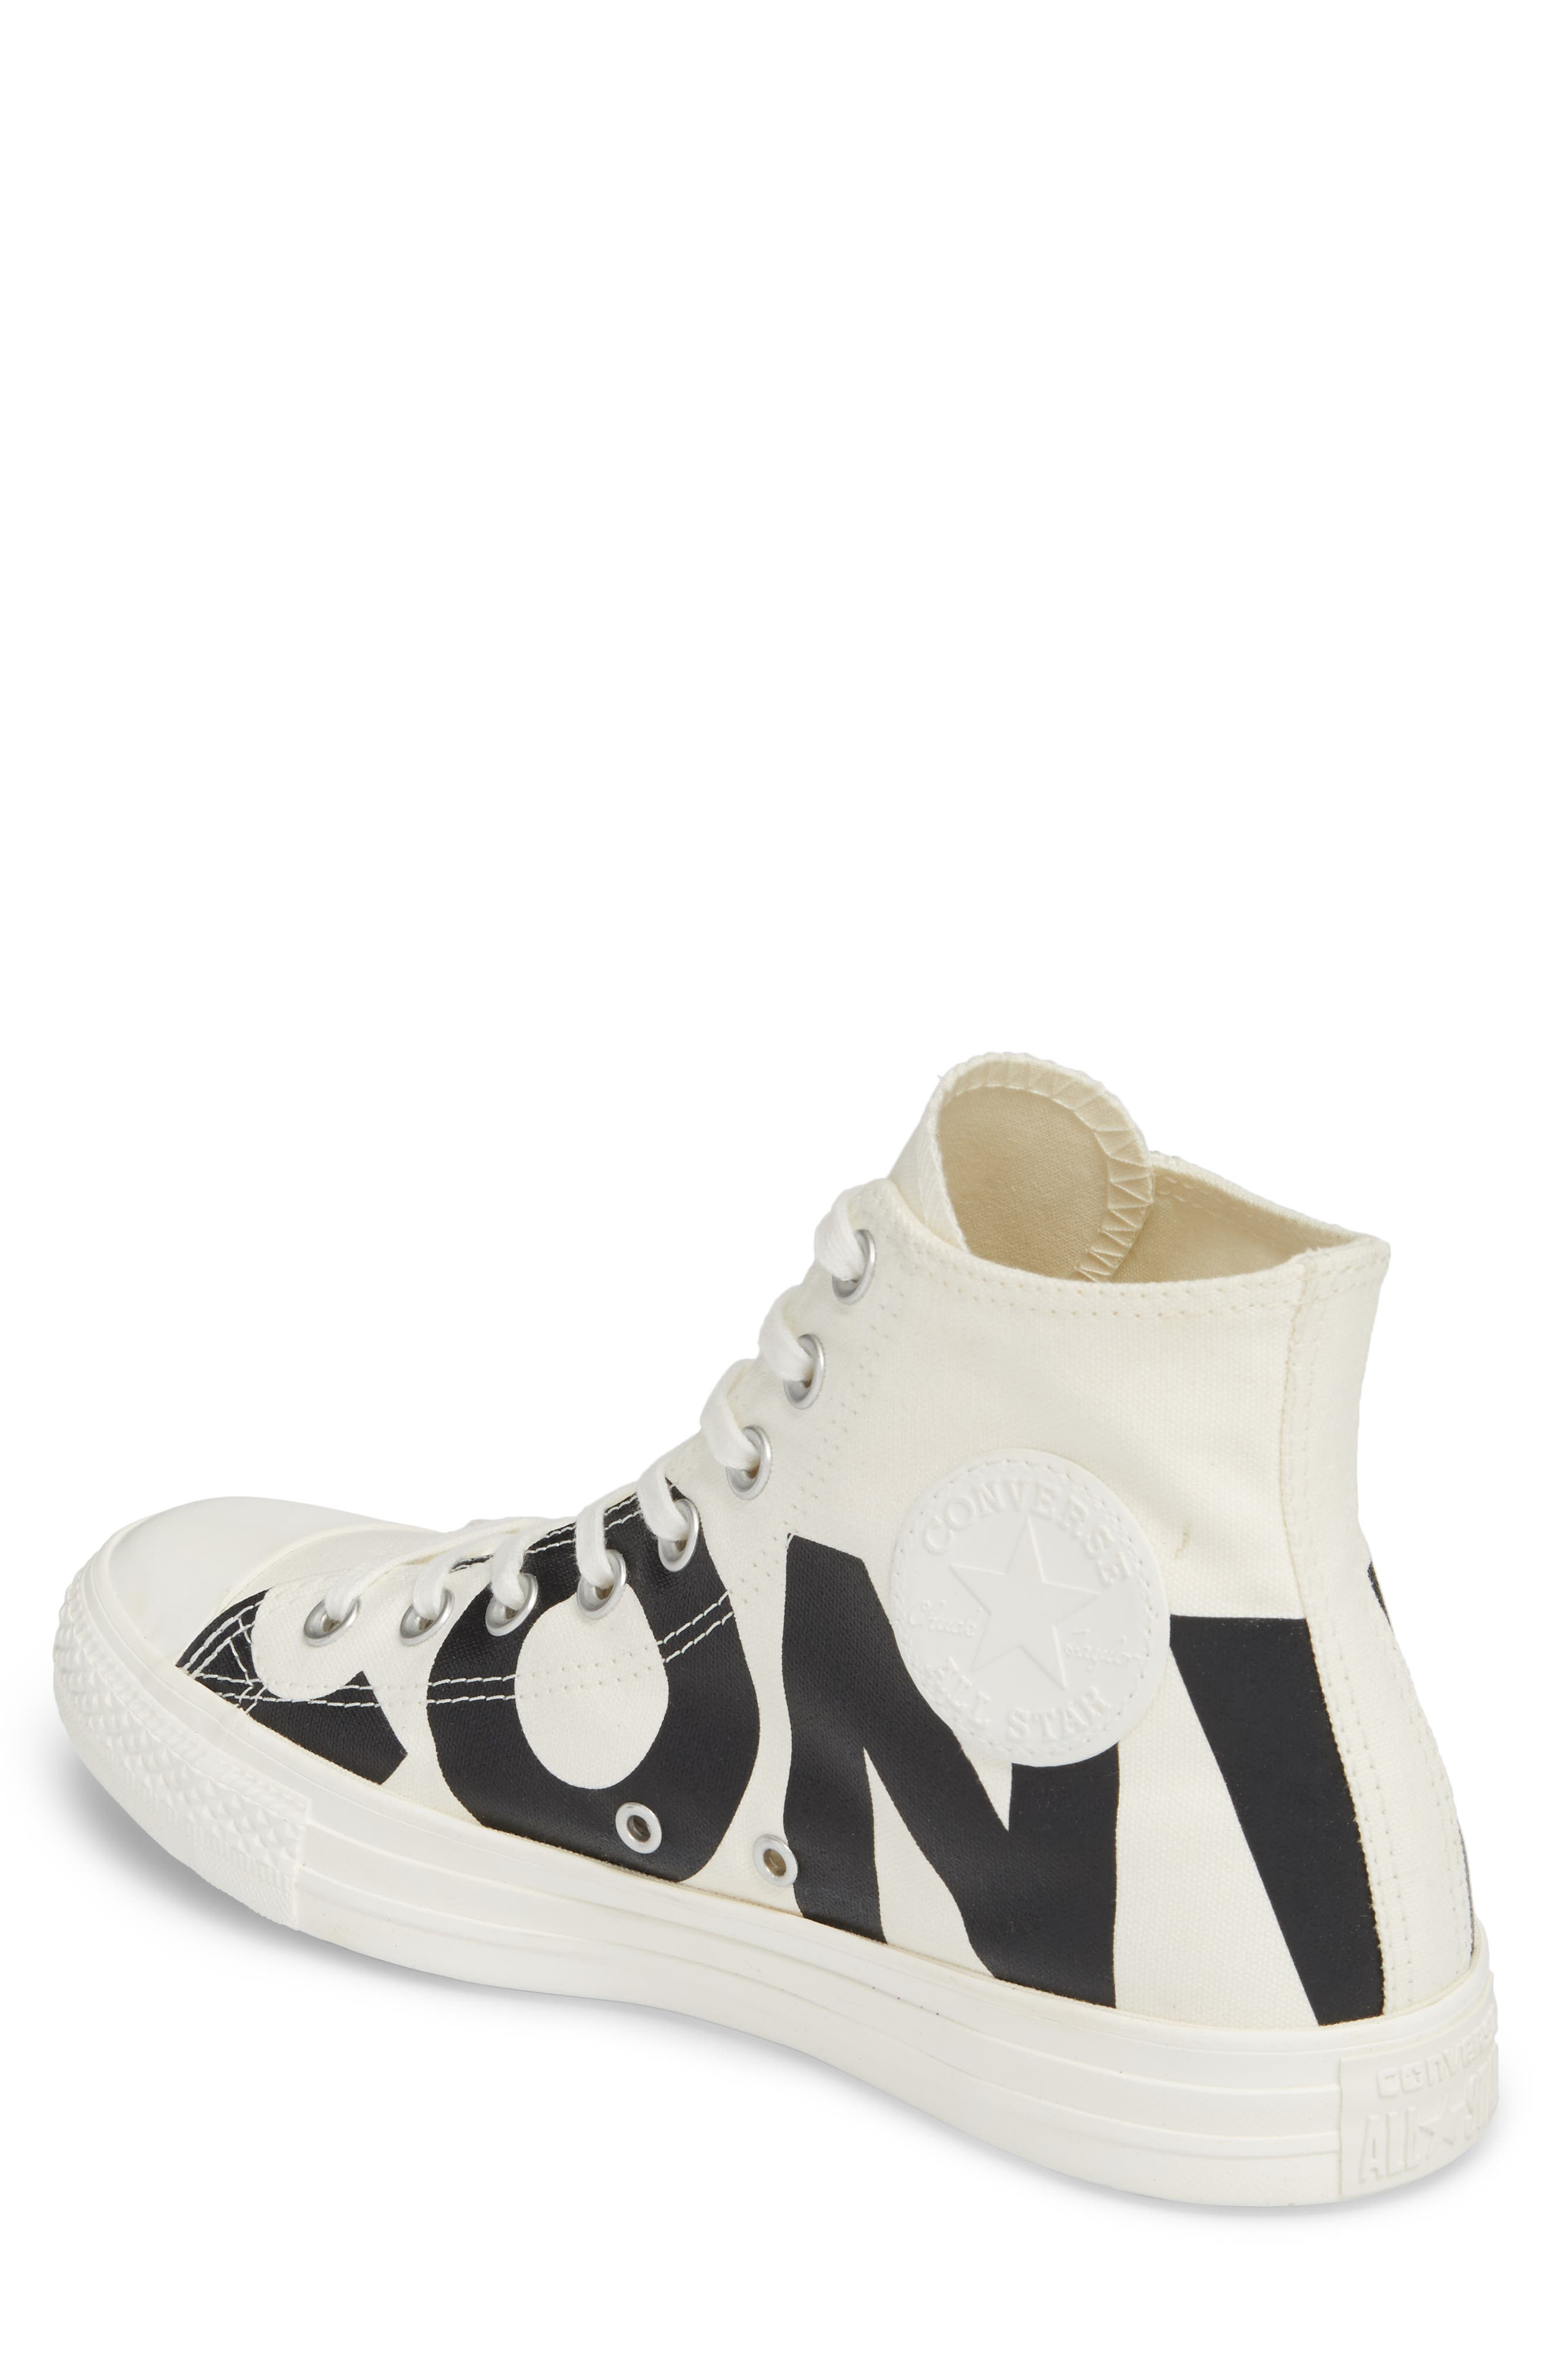 One Star Wordmark High Top Sneaker,                             Alternate thumbnail 2, color,                             001